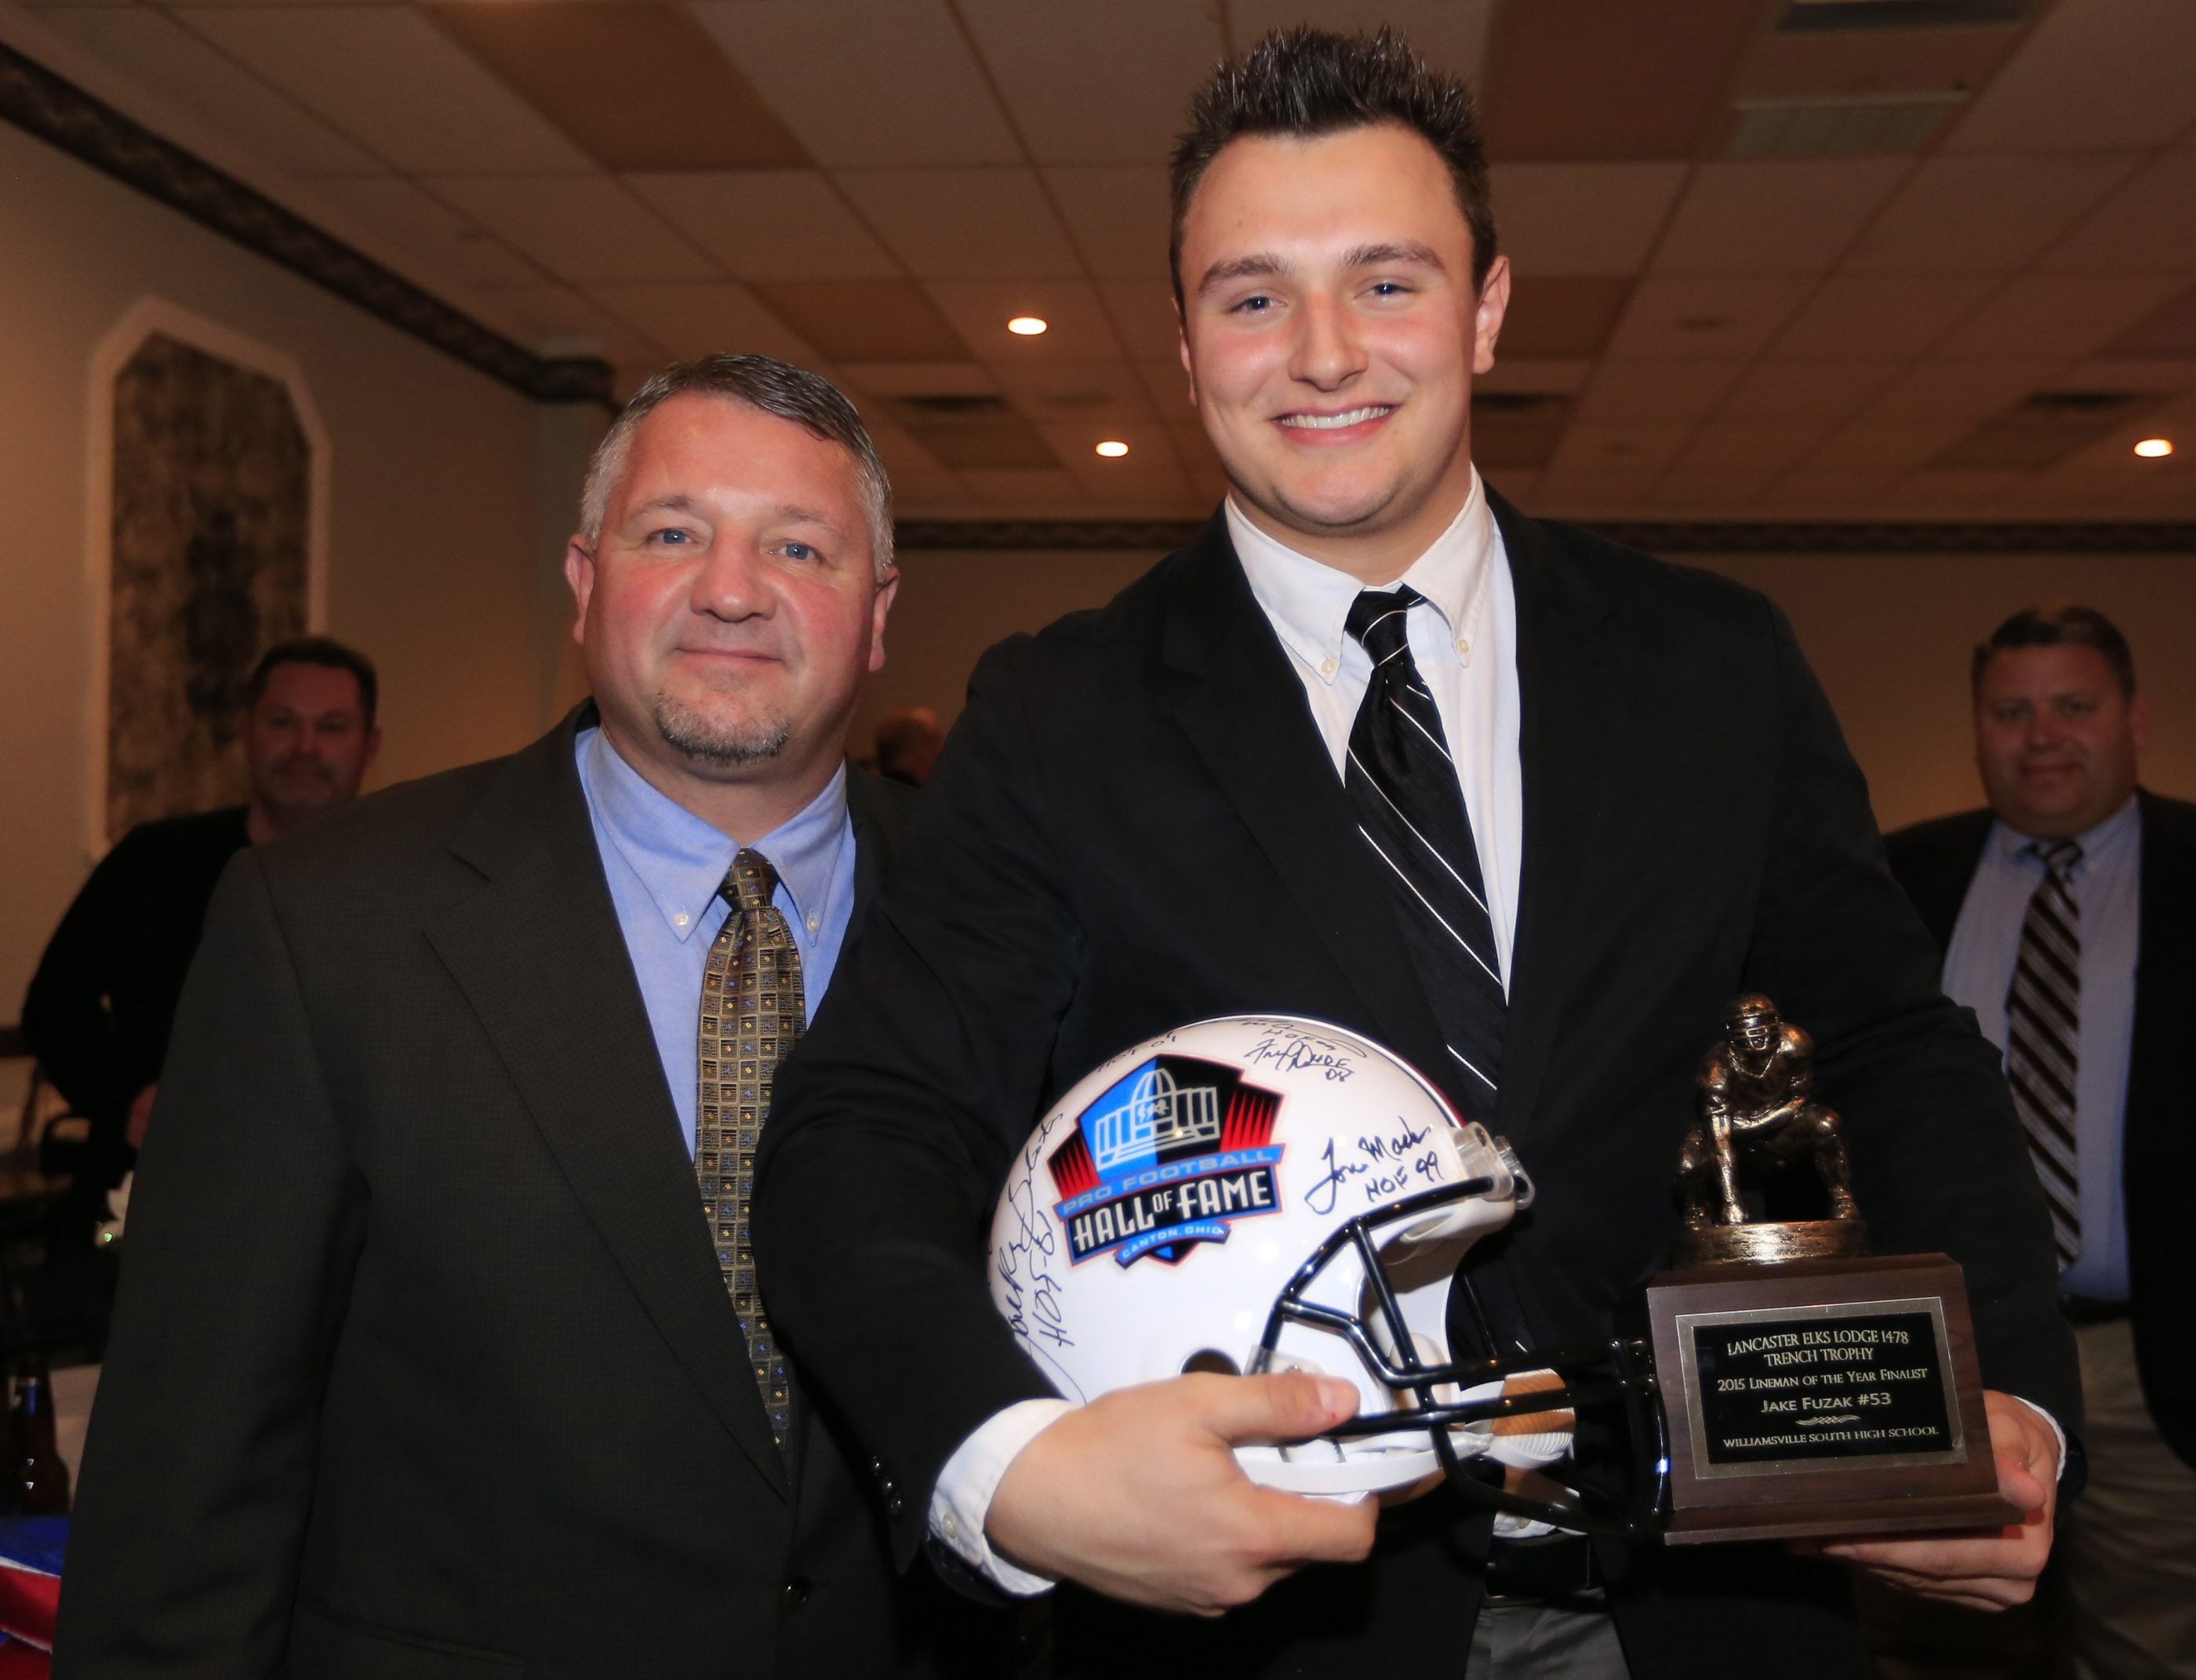 Trench Trophy winner Jake Fuzak from Williamsville South is joined by his coach, Kraig Kurzanski. Fuzak is the first player from Williamsville South to win the trophy.